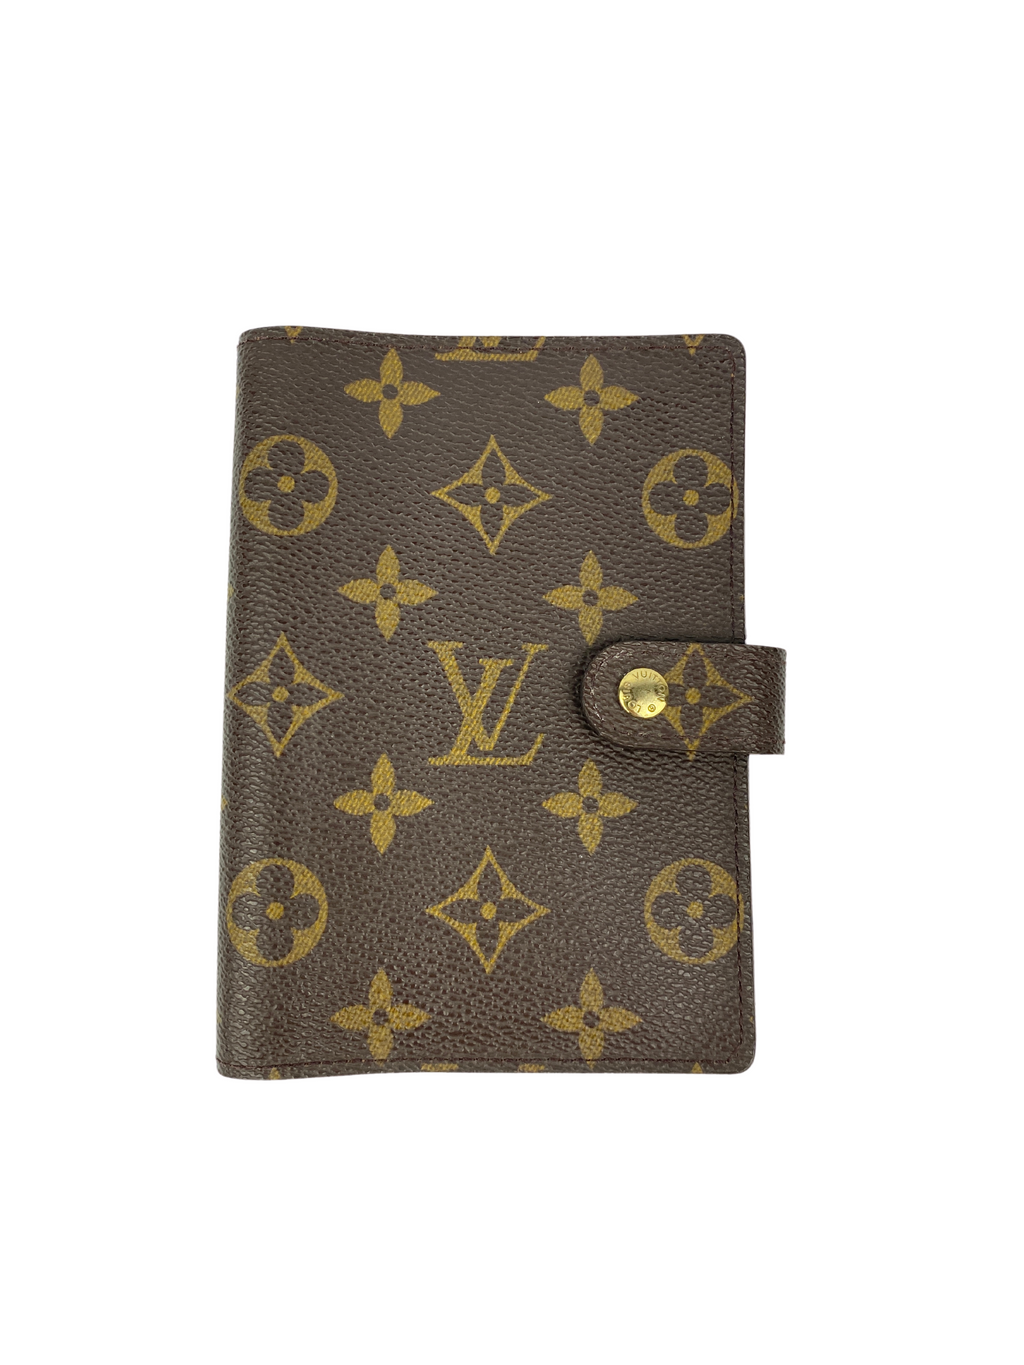 LOUIS VUITTON - AGENDA PM IN MONOGRAM CANVAS